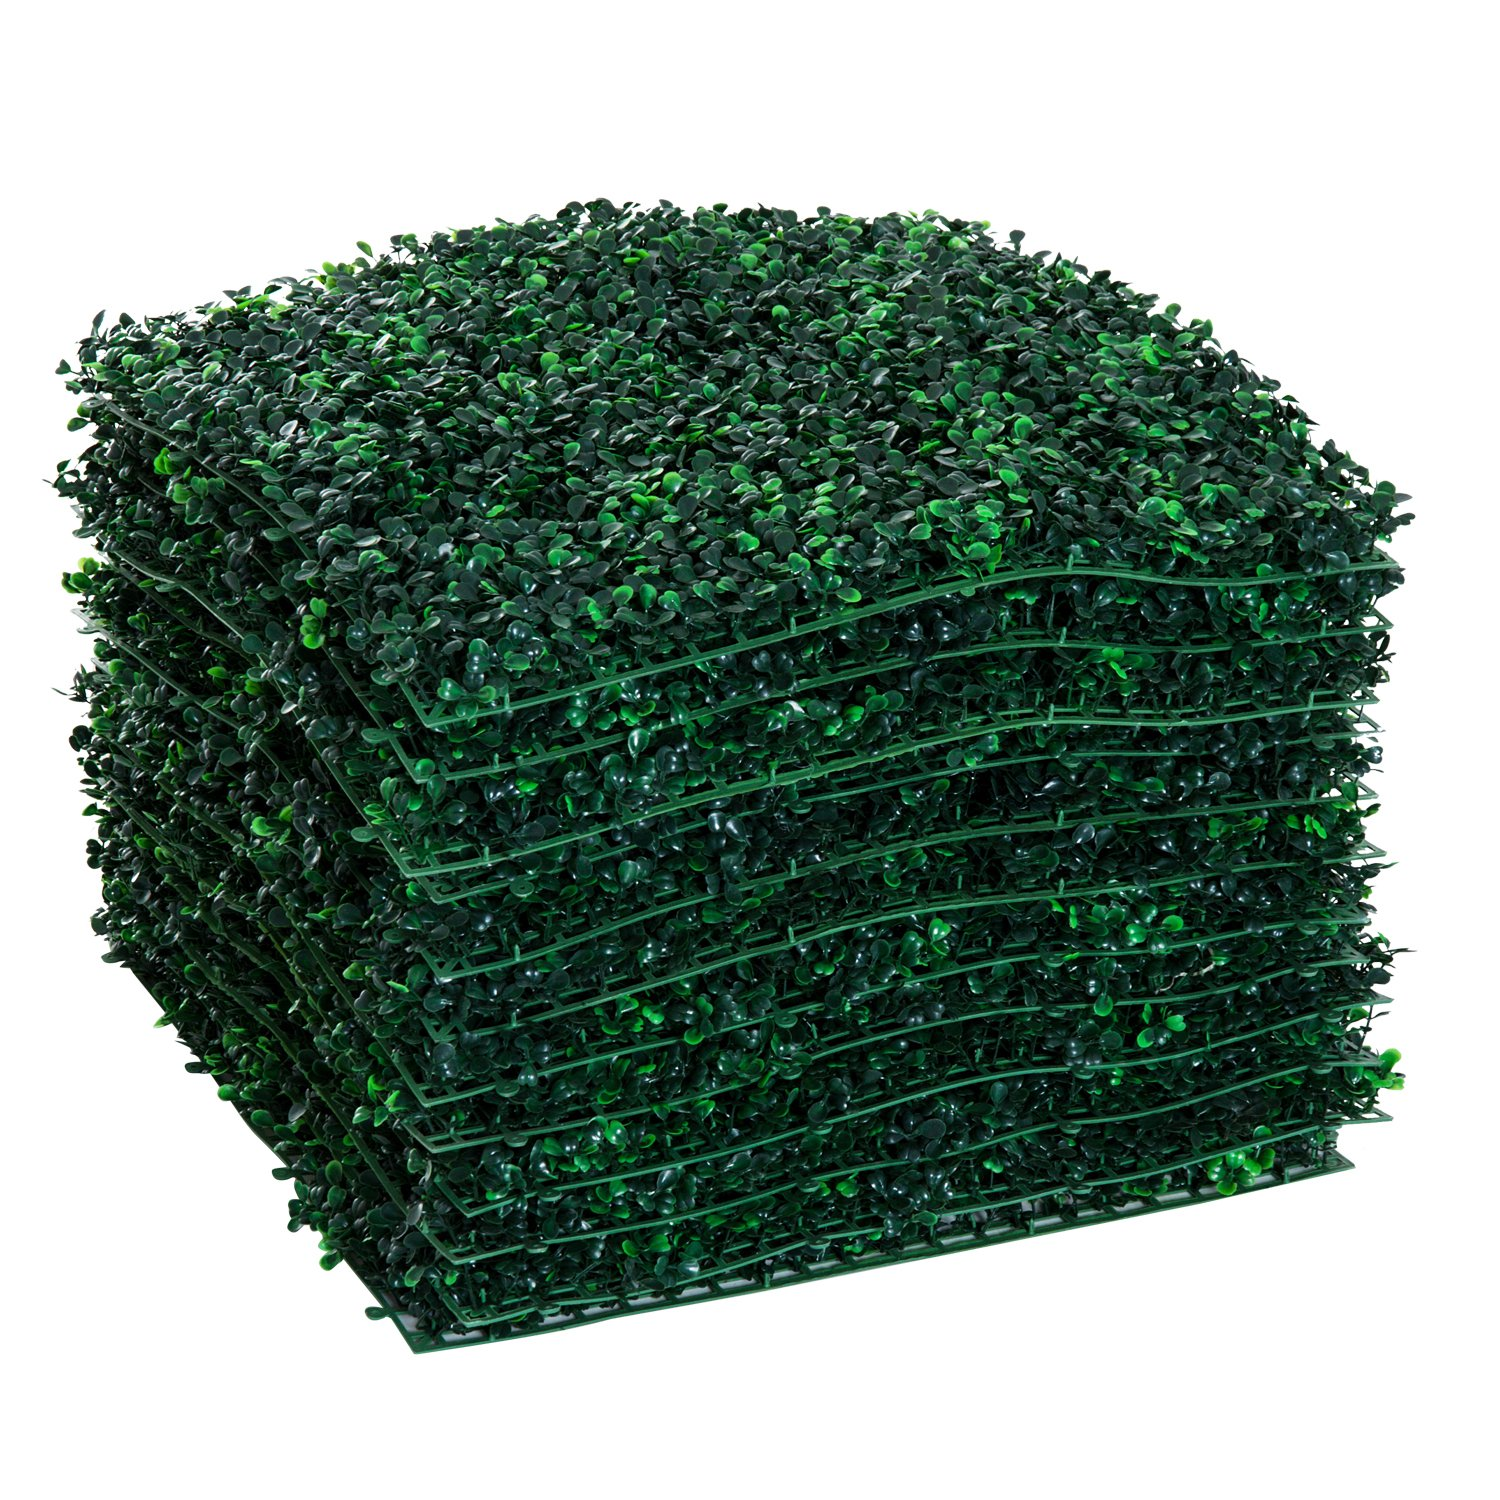 Outsunny 12 Piece 20''x 20'' Artificial Boxwood Hedge Mat Plant Panels - Boxwood